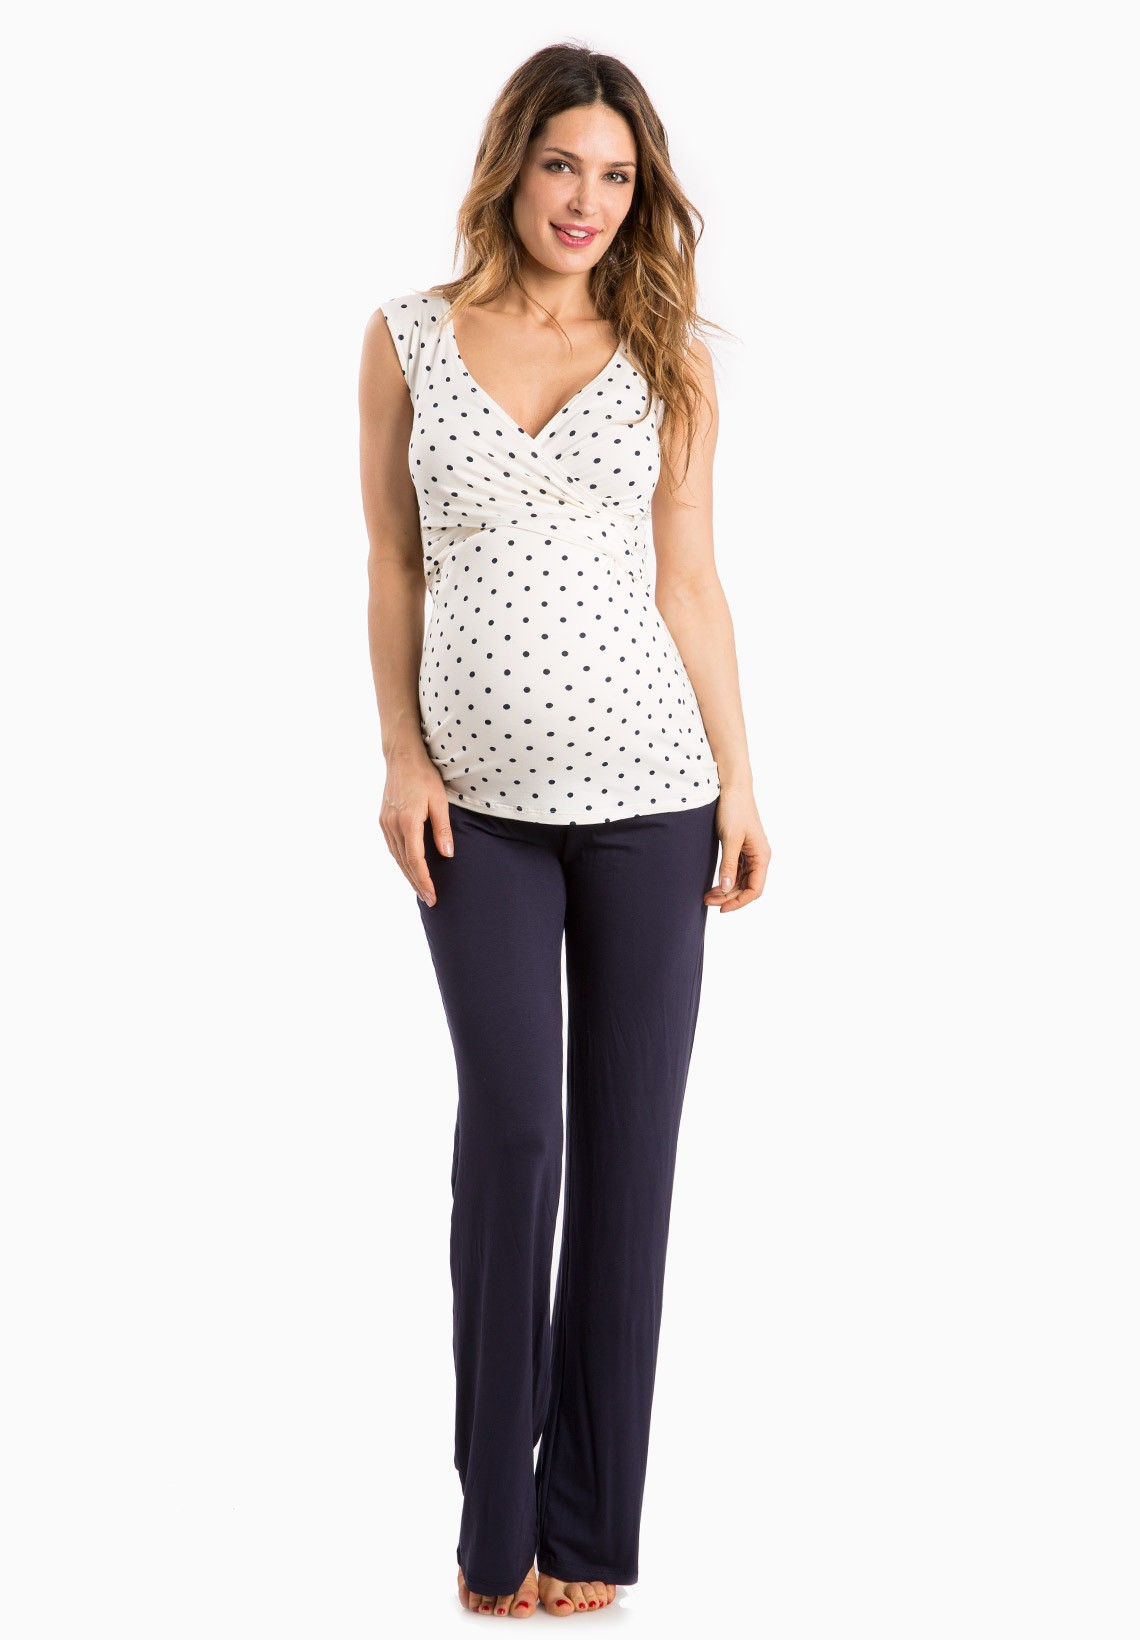 Nursing pajamas trendy selections at affordable prices envie nursing flore tank maternity nightwear ombrellifo Image collections